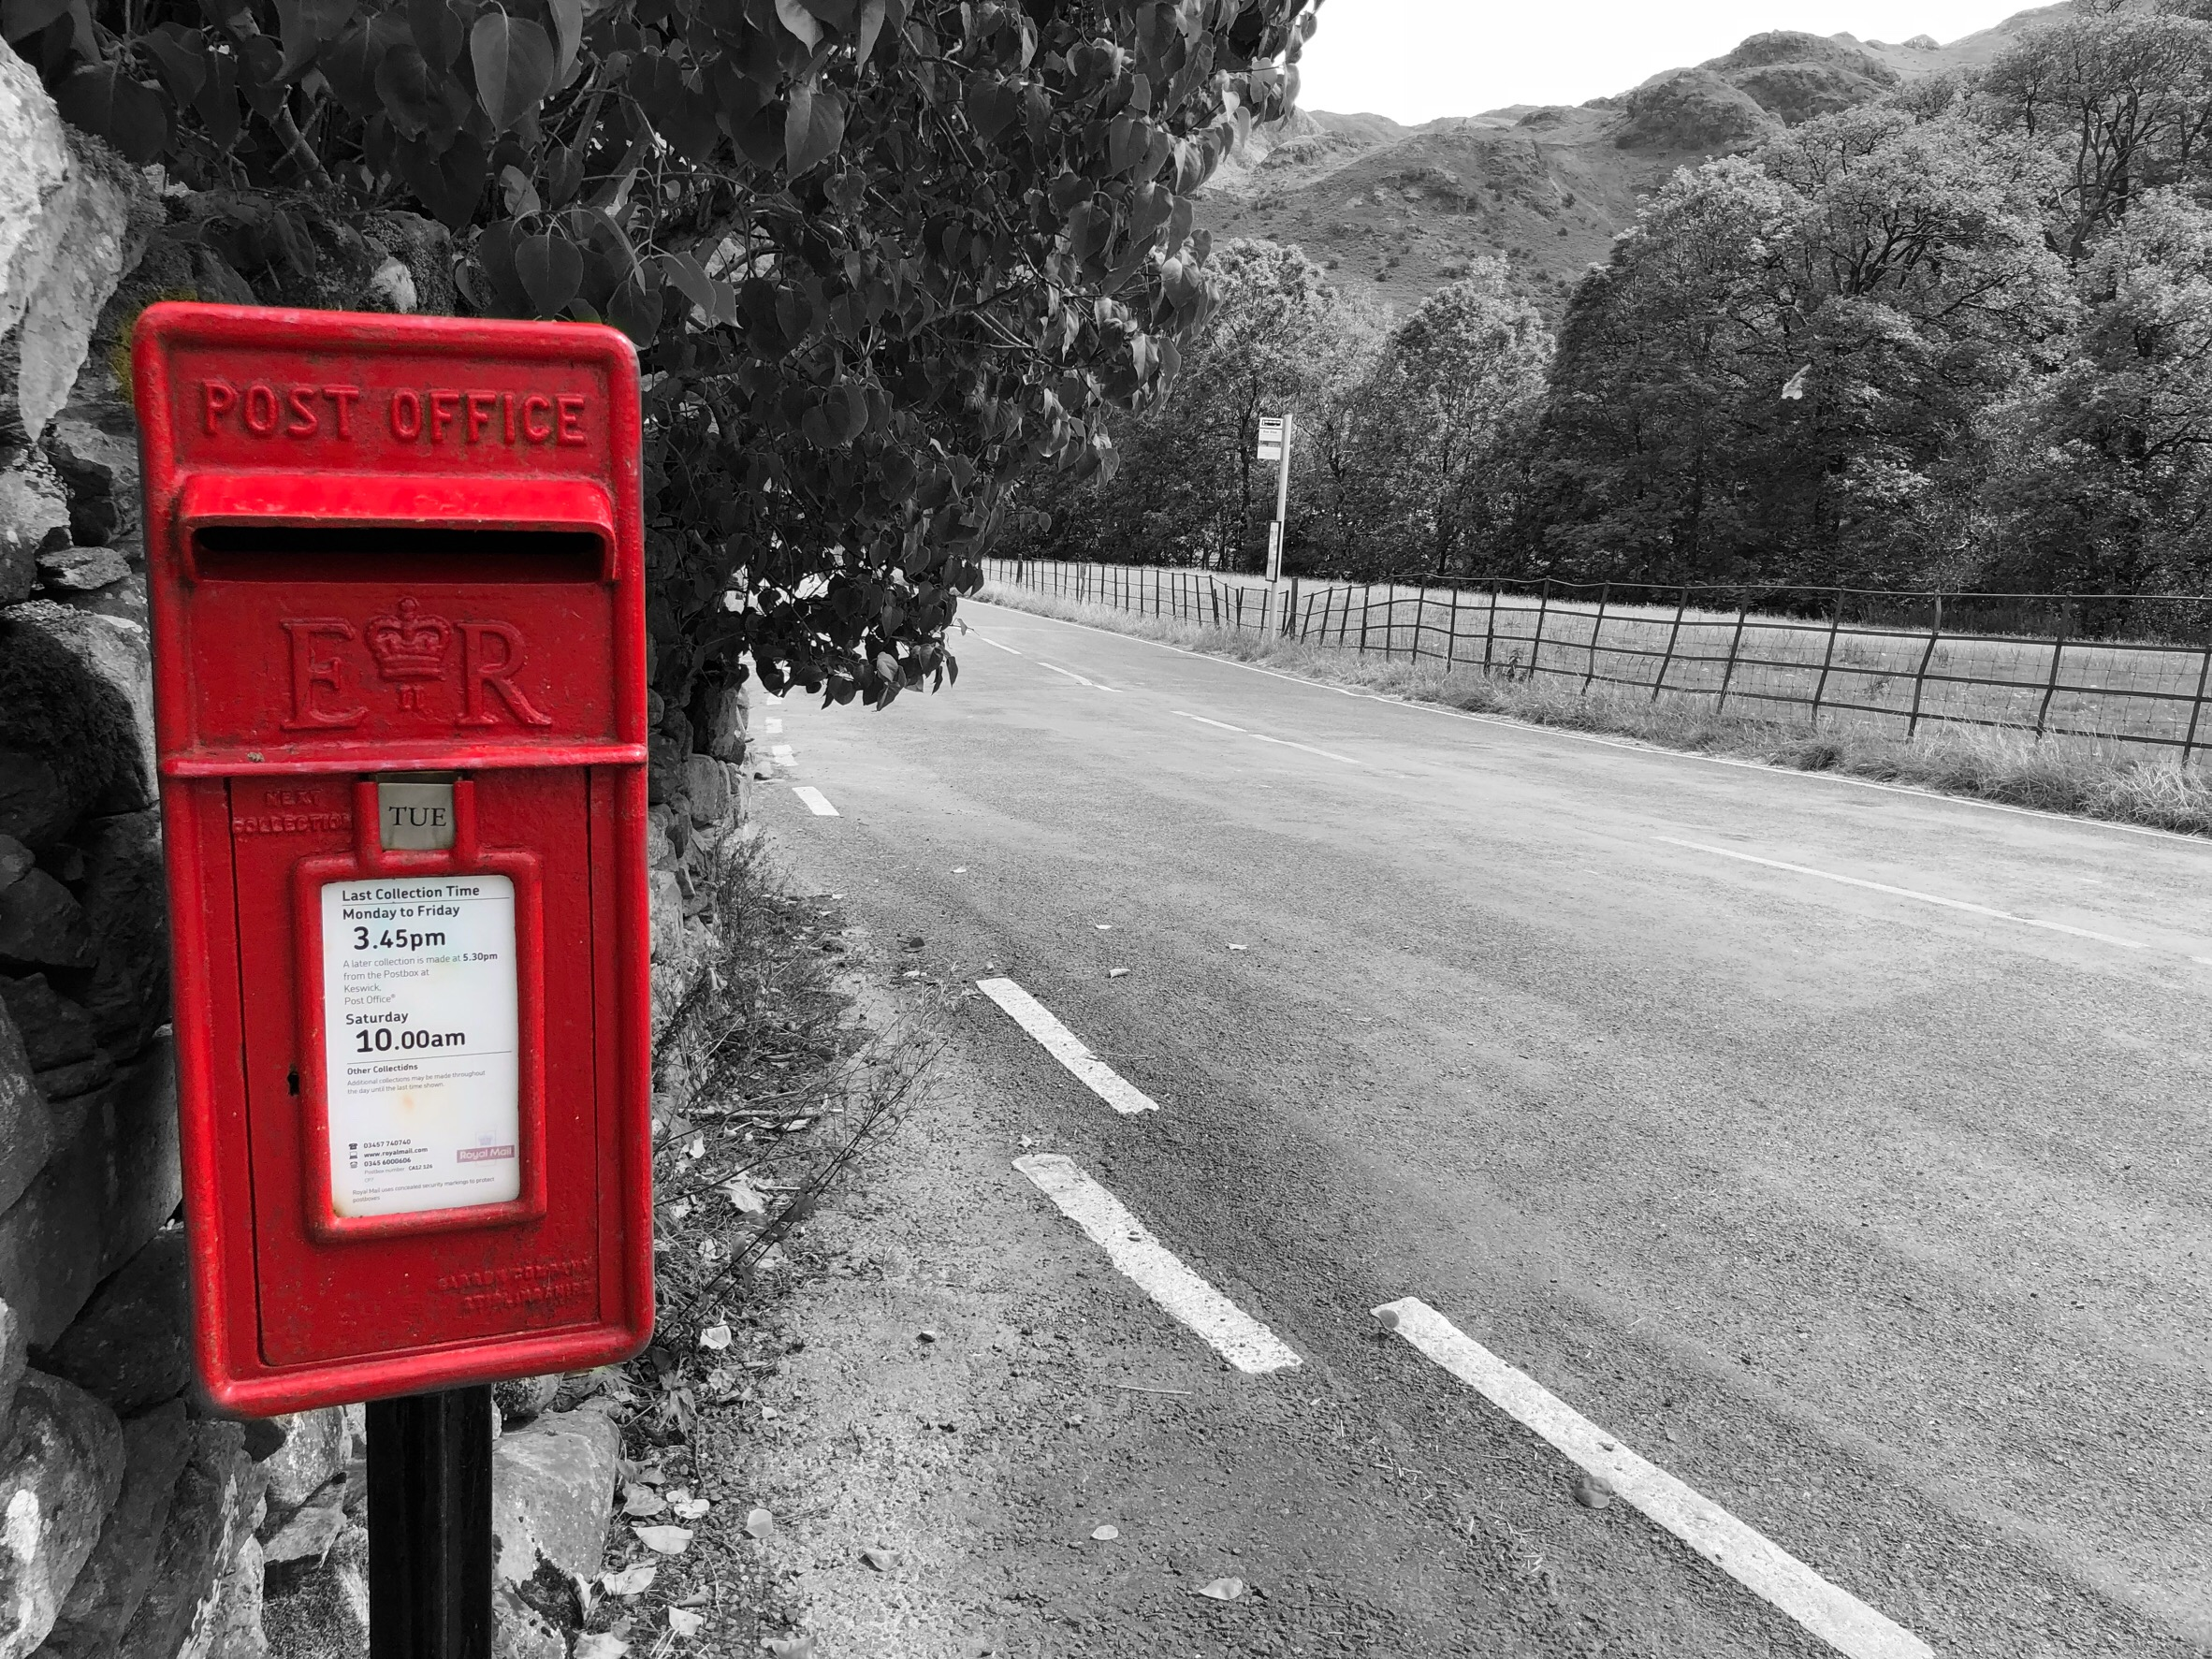 RED: Post Box